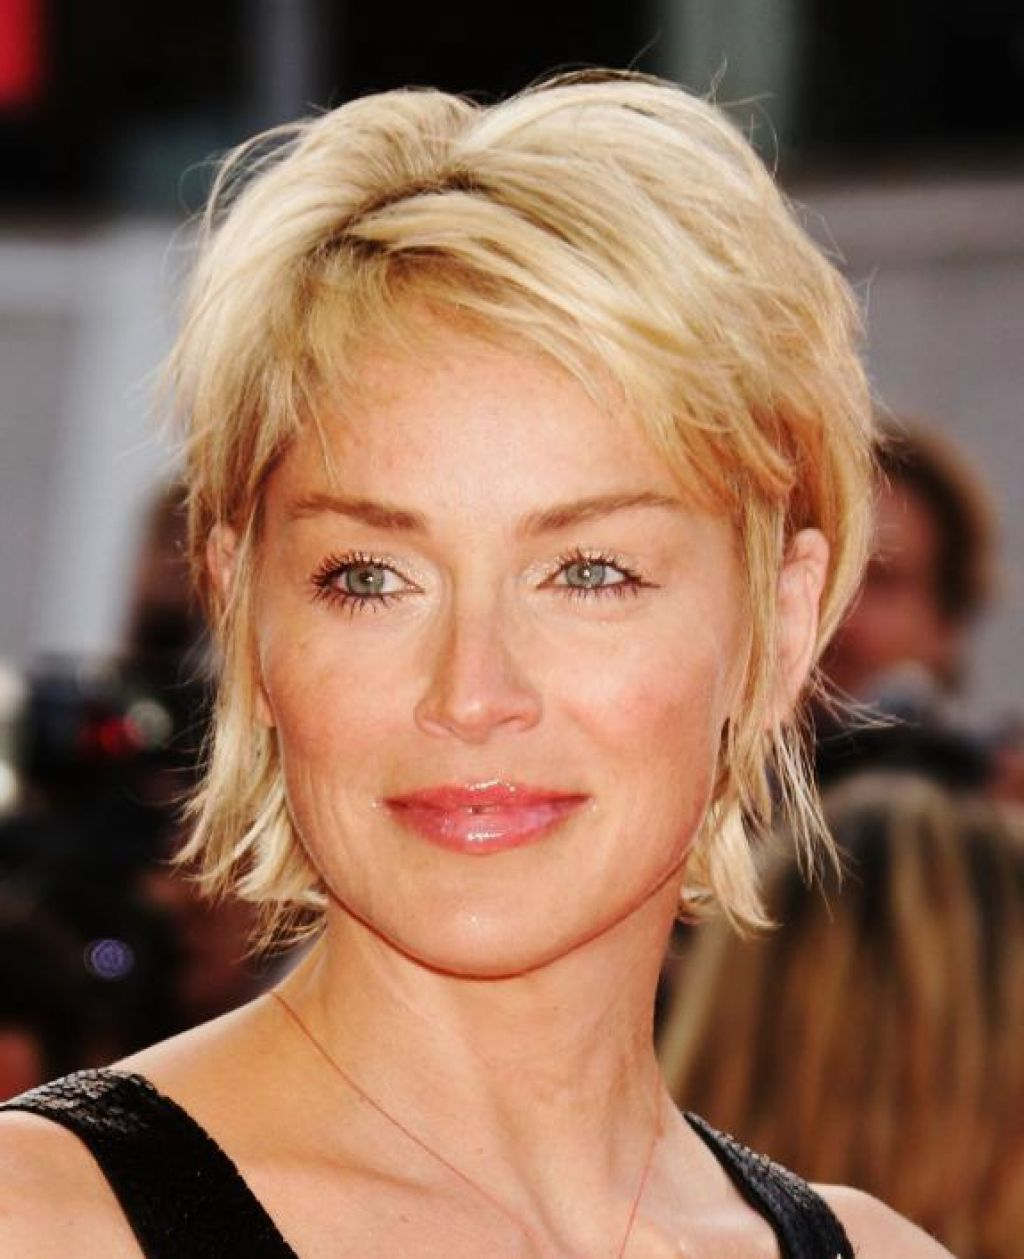 Sharon stone spiky short haircut for older women over 50 getty images - Hairstyles For Women Over 50 With Fine Hair